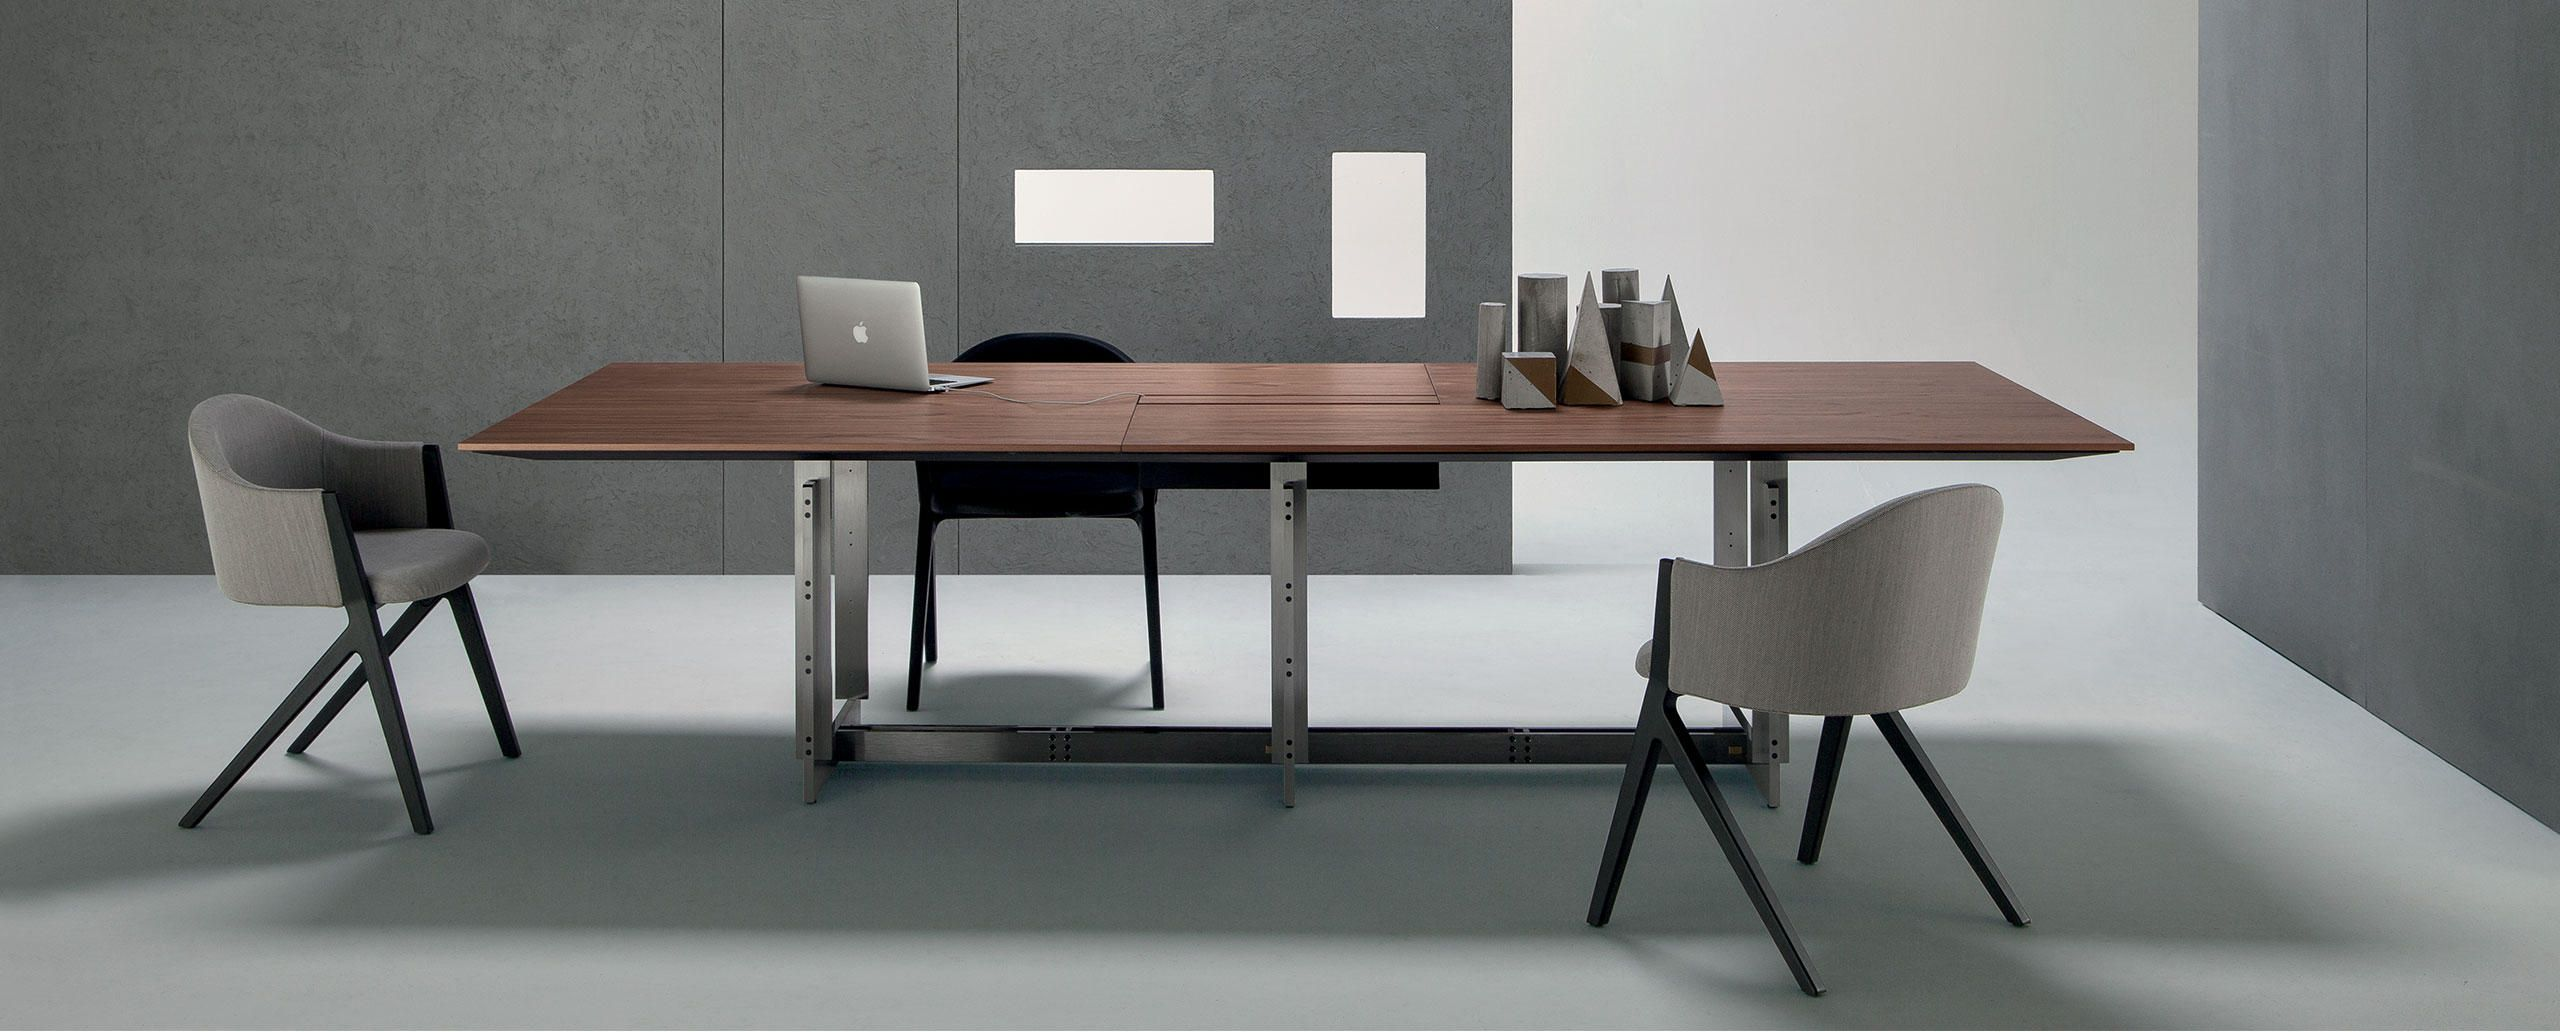 Cassina Sarpi Office Dining Table Office Table Table Cassina